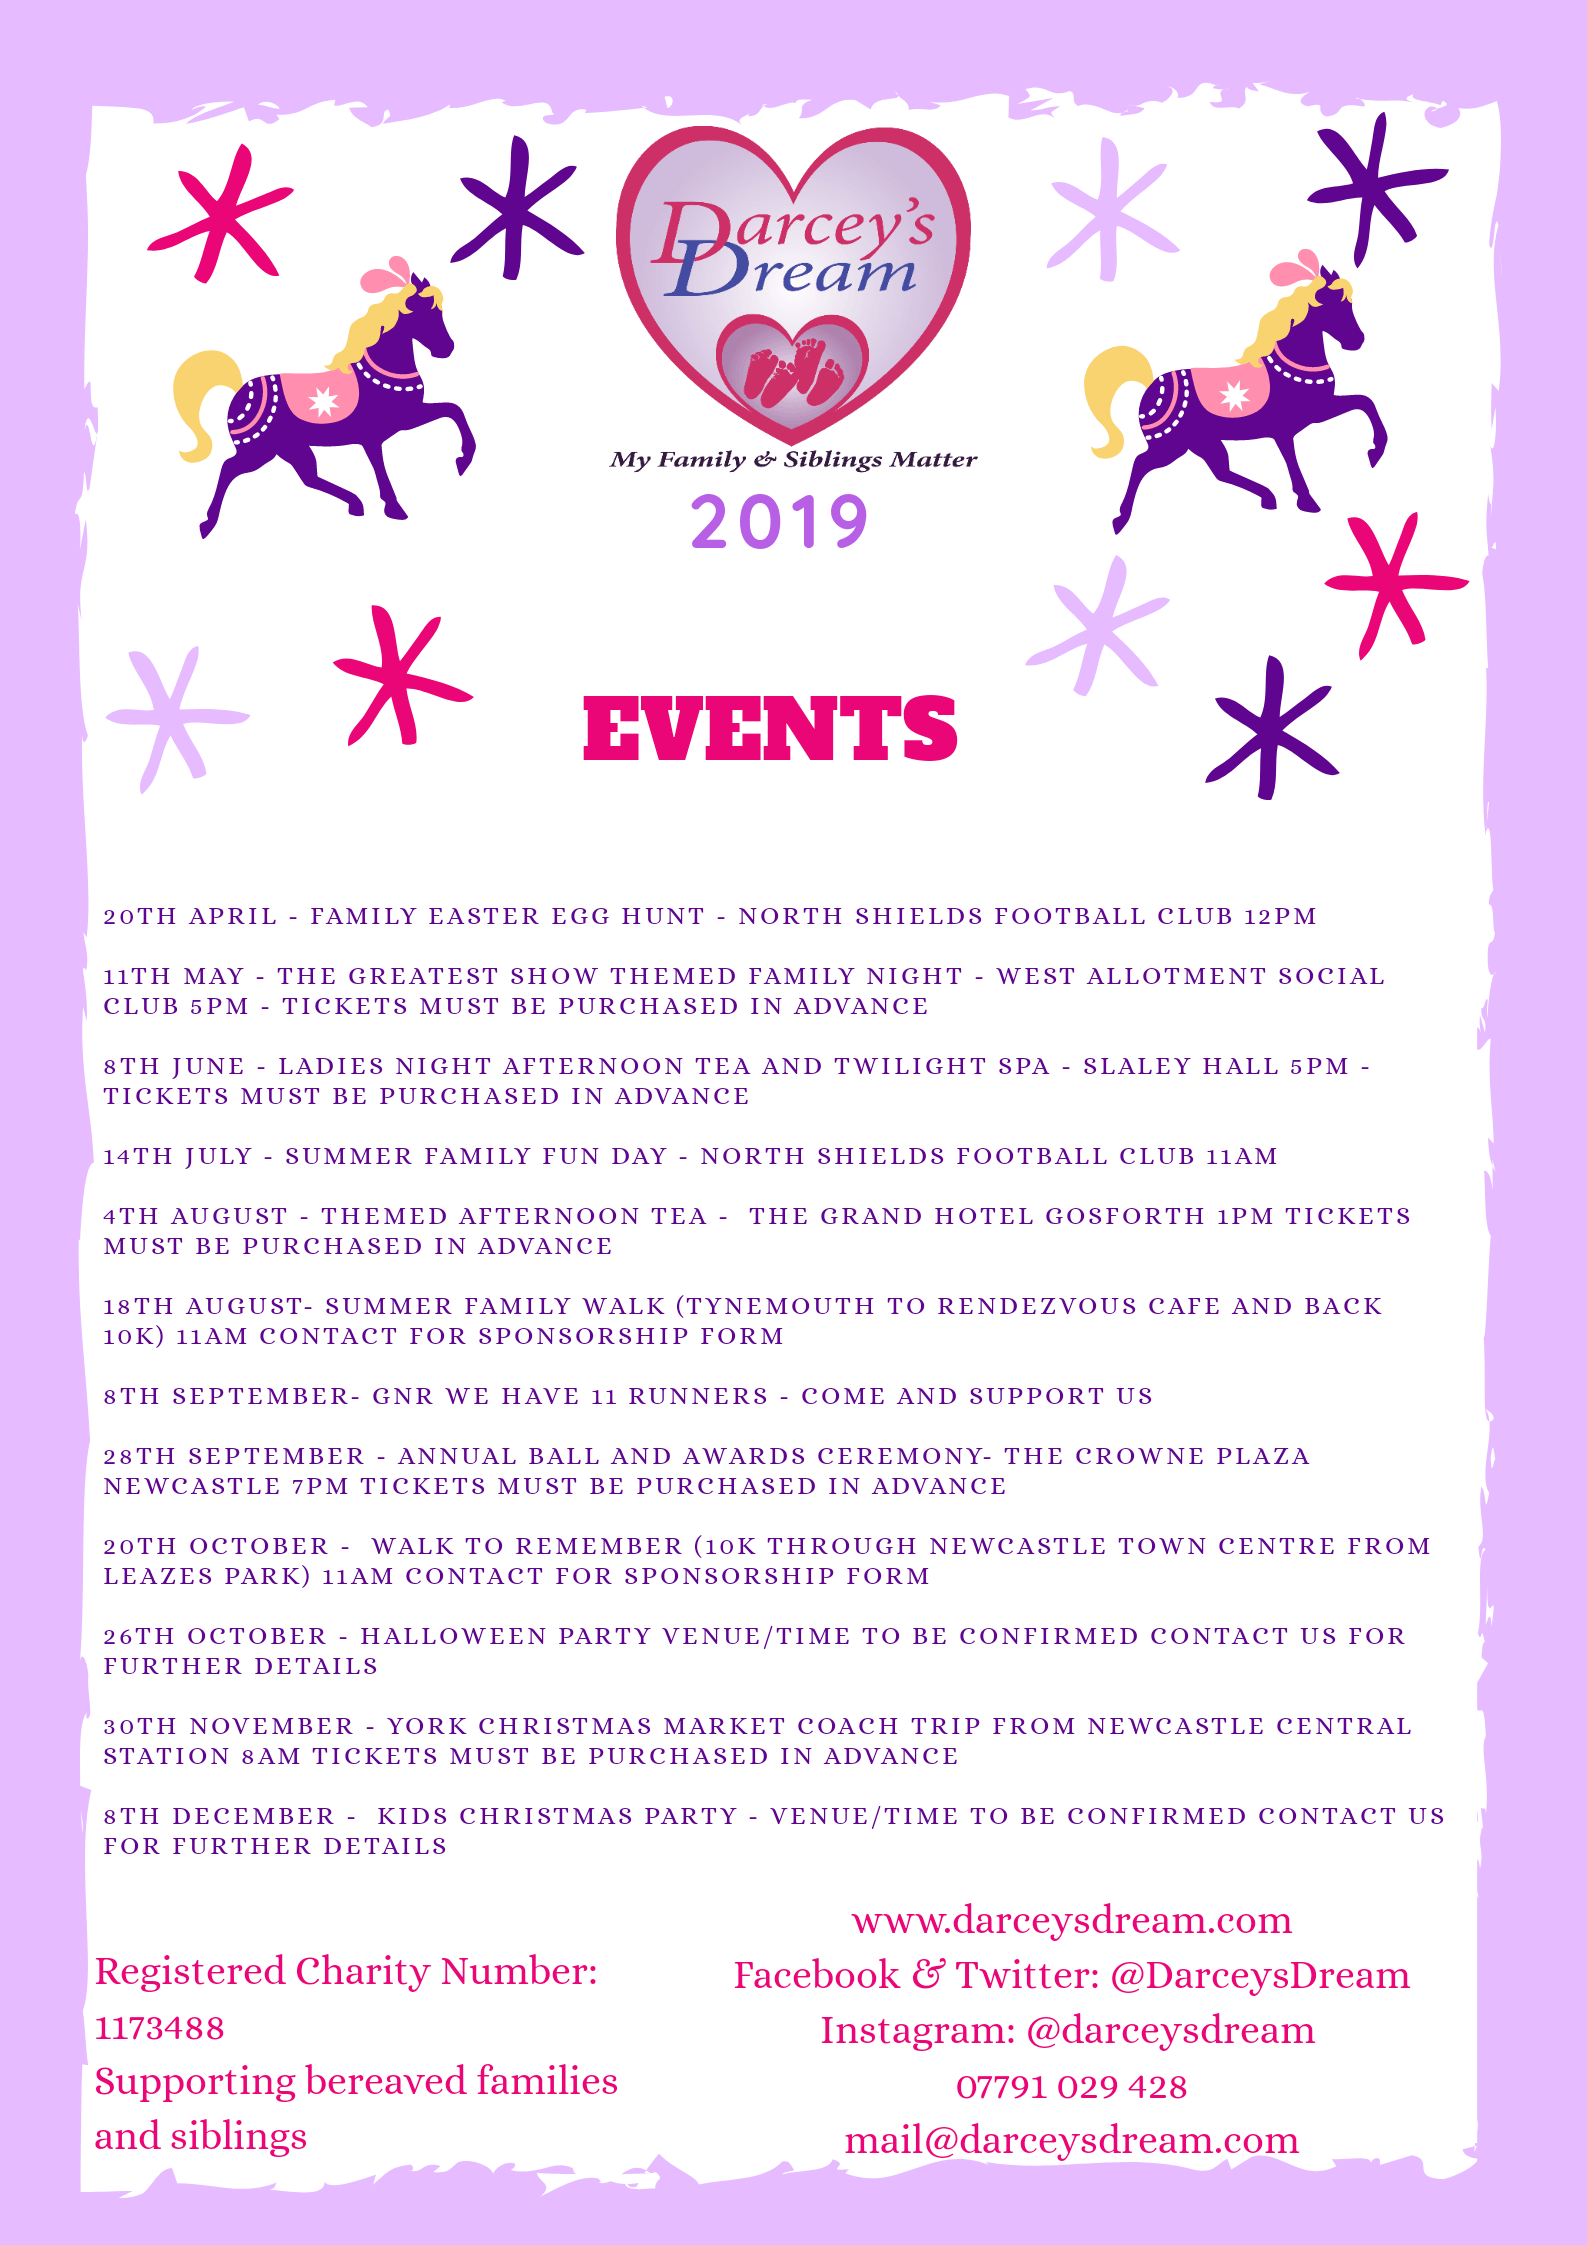 My Christmas Dream 2019.Darcey S Dream Charity Events And Fundraising